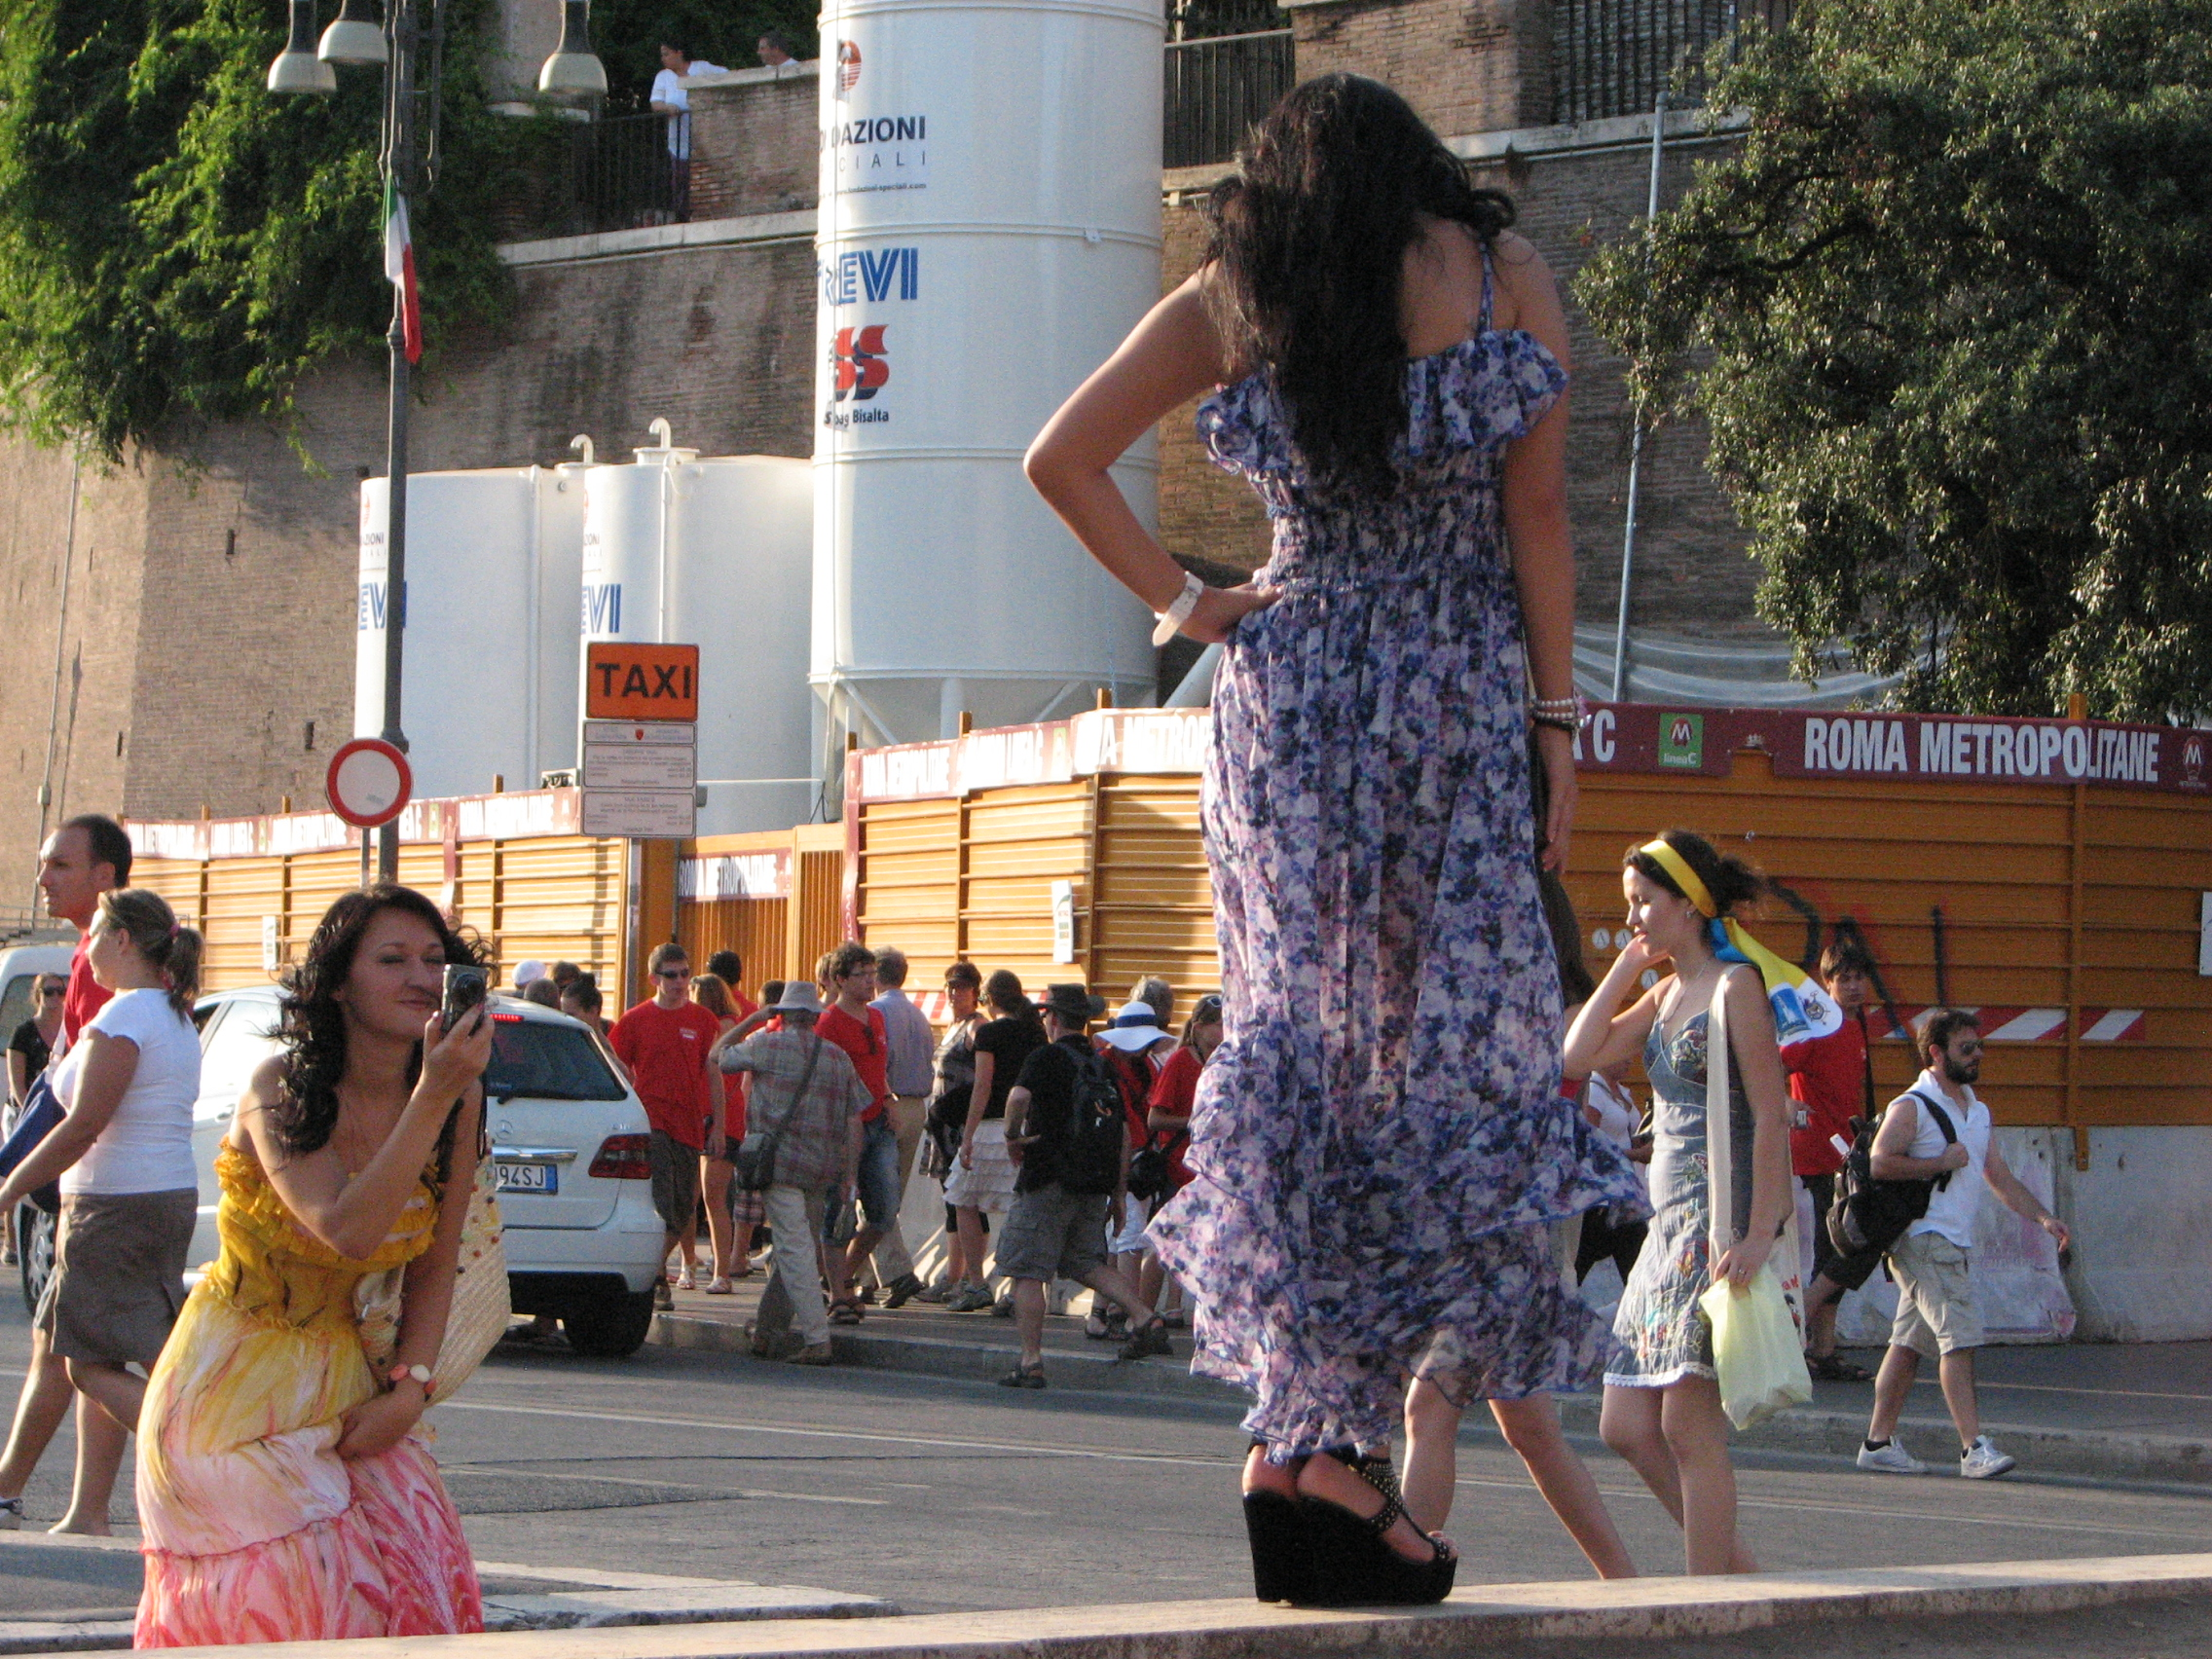 Young women being photoed in Rome, Italy, European Union, August 2011, picture 41.